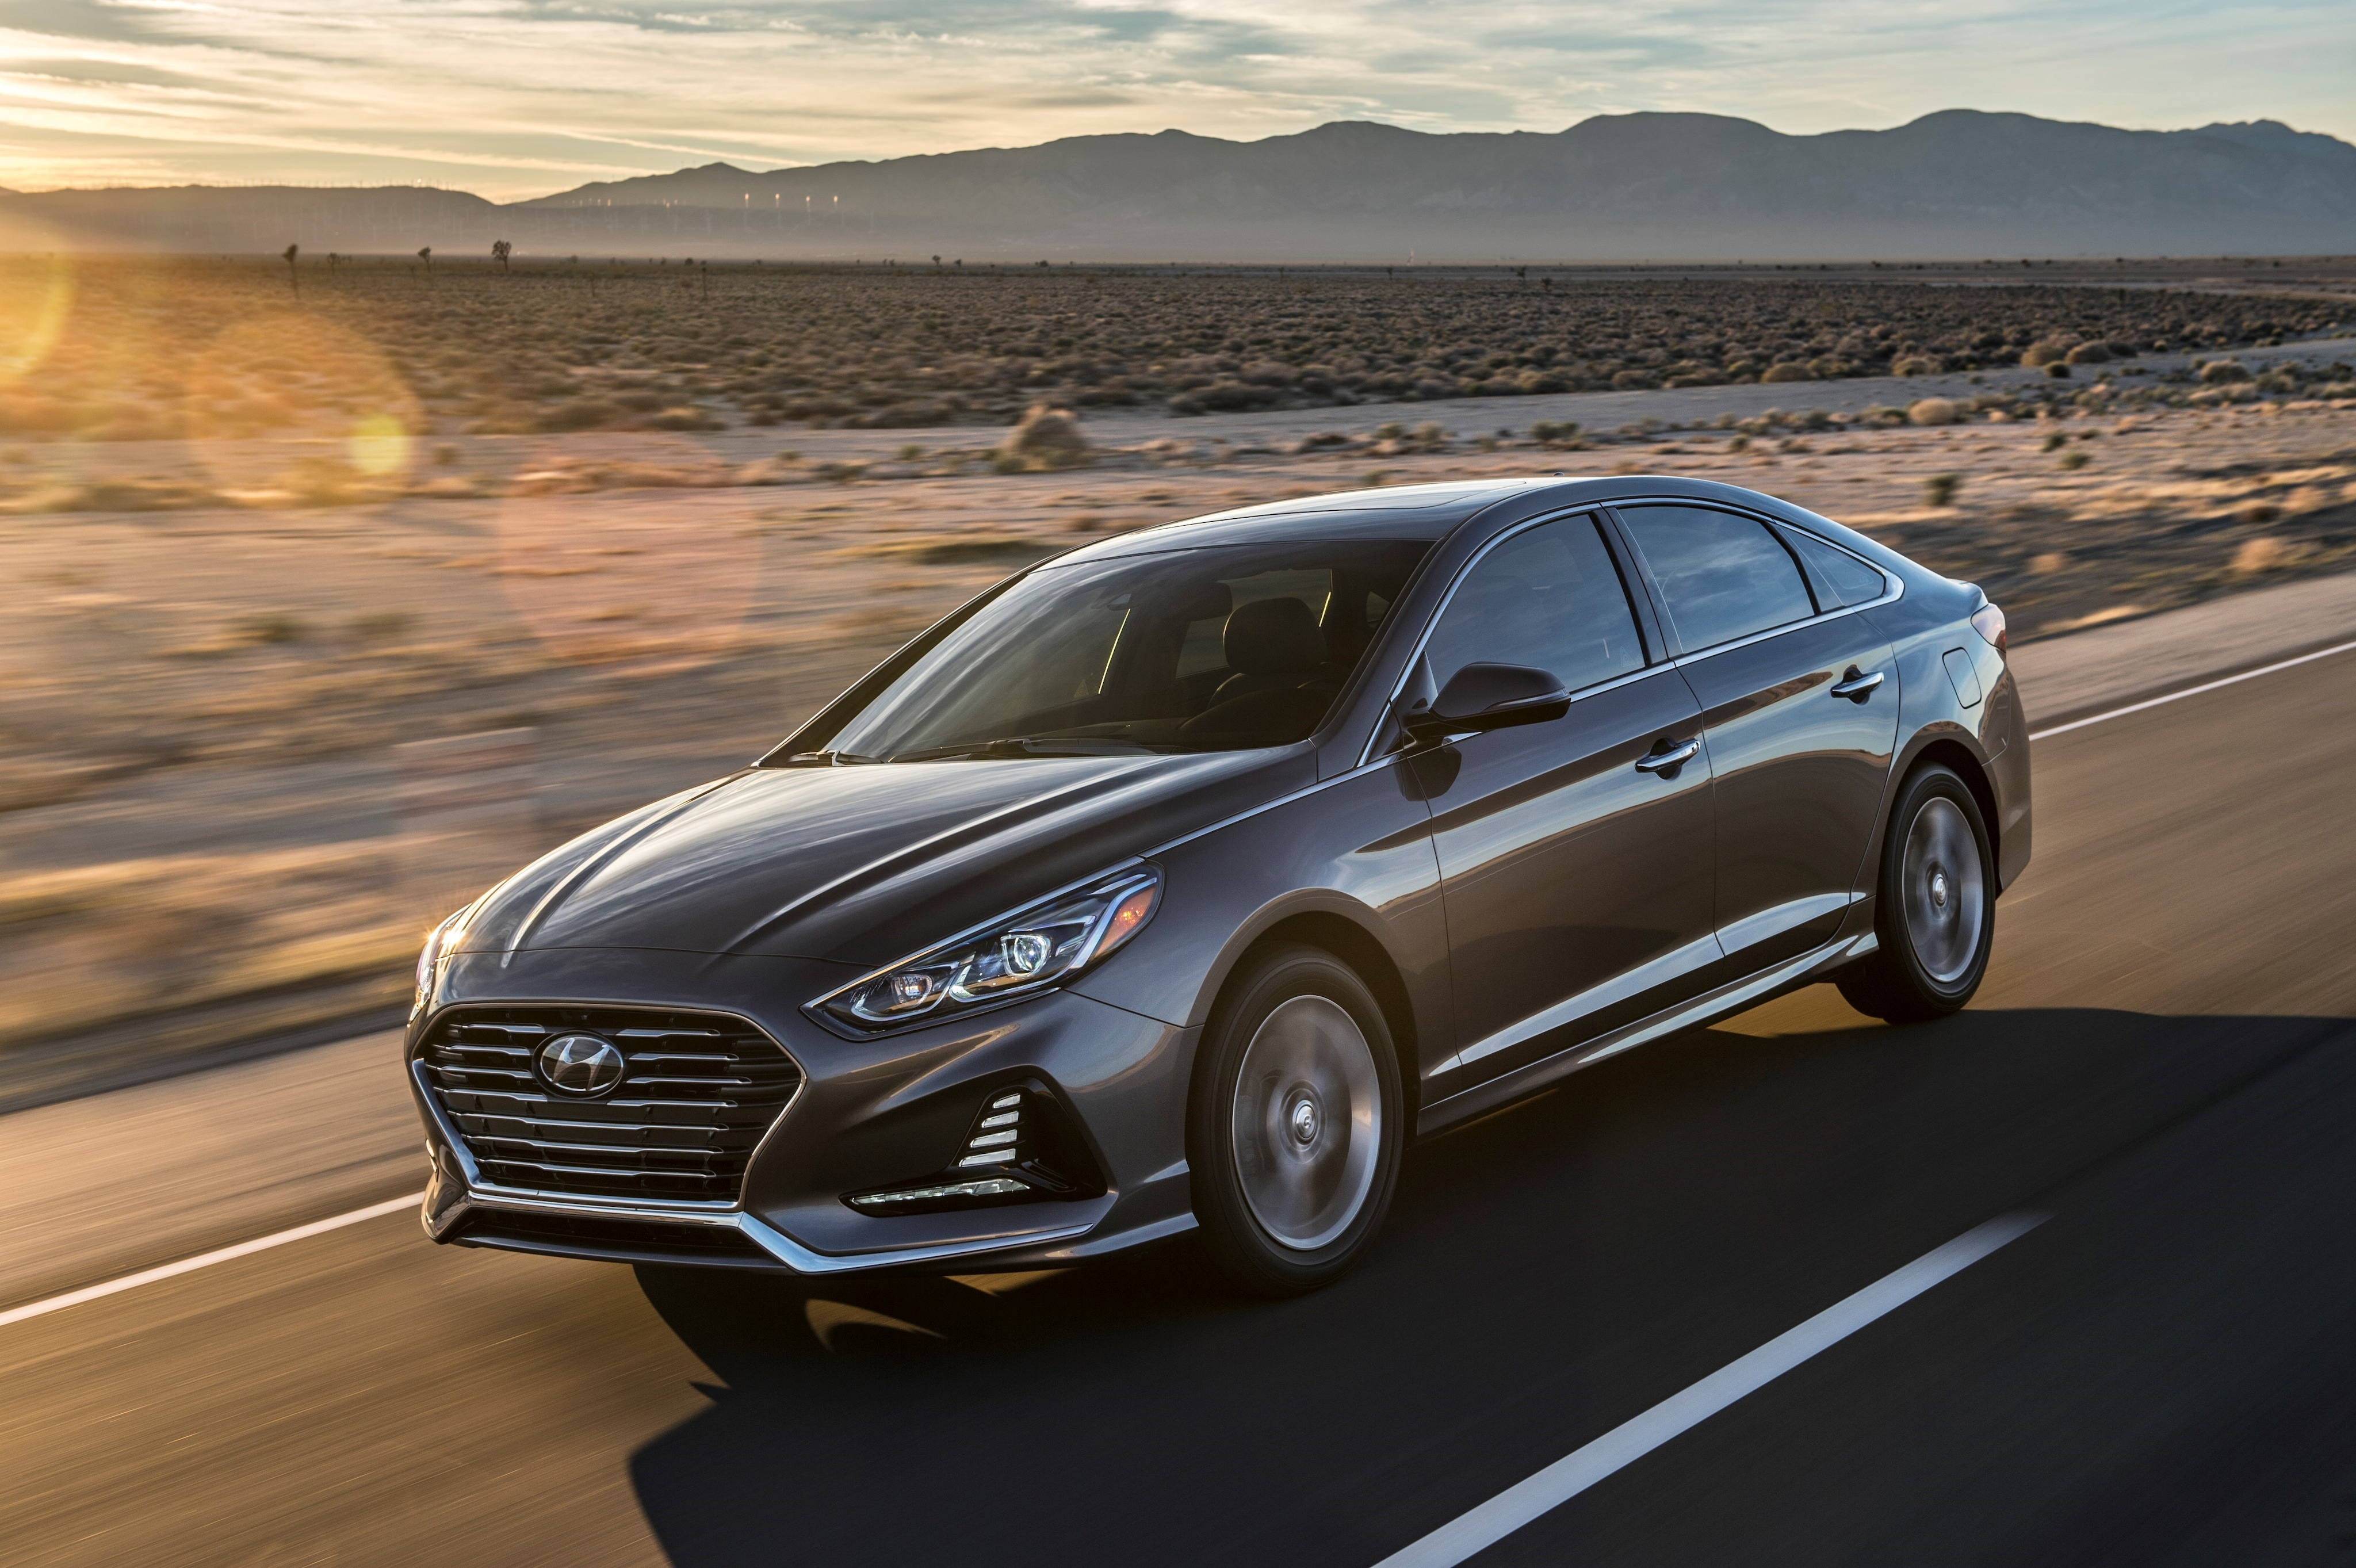 hyundai and sonata recognized for long term ownership value by kelley blue book